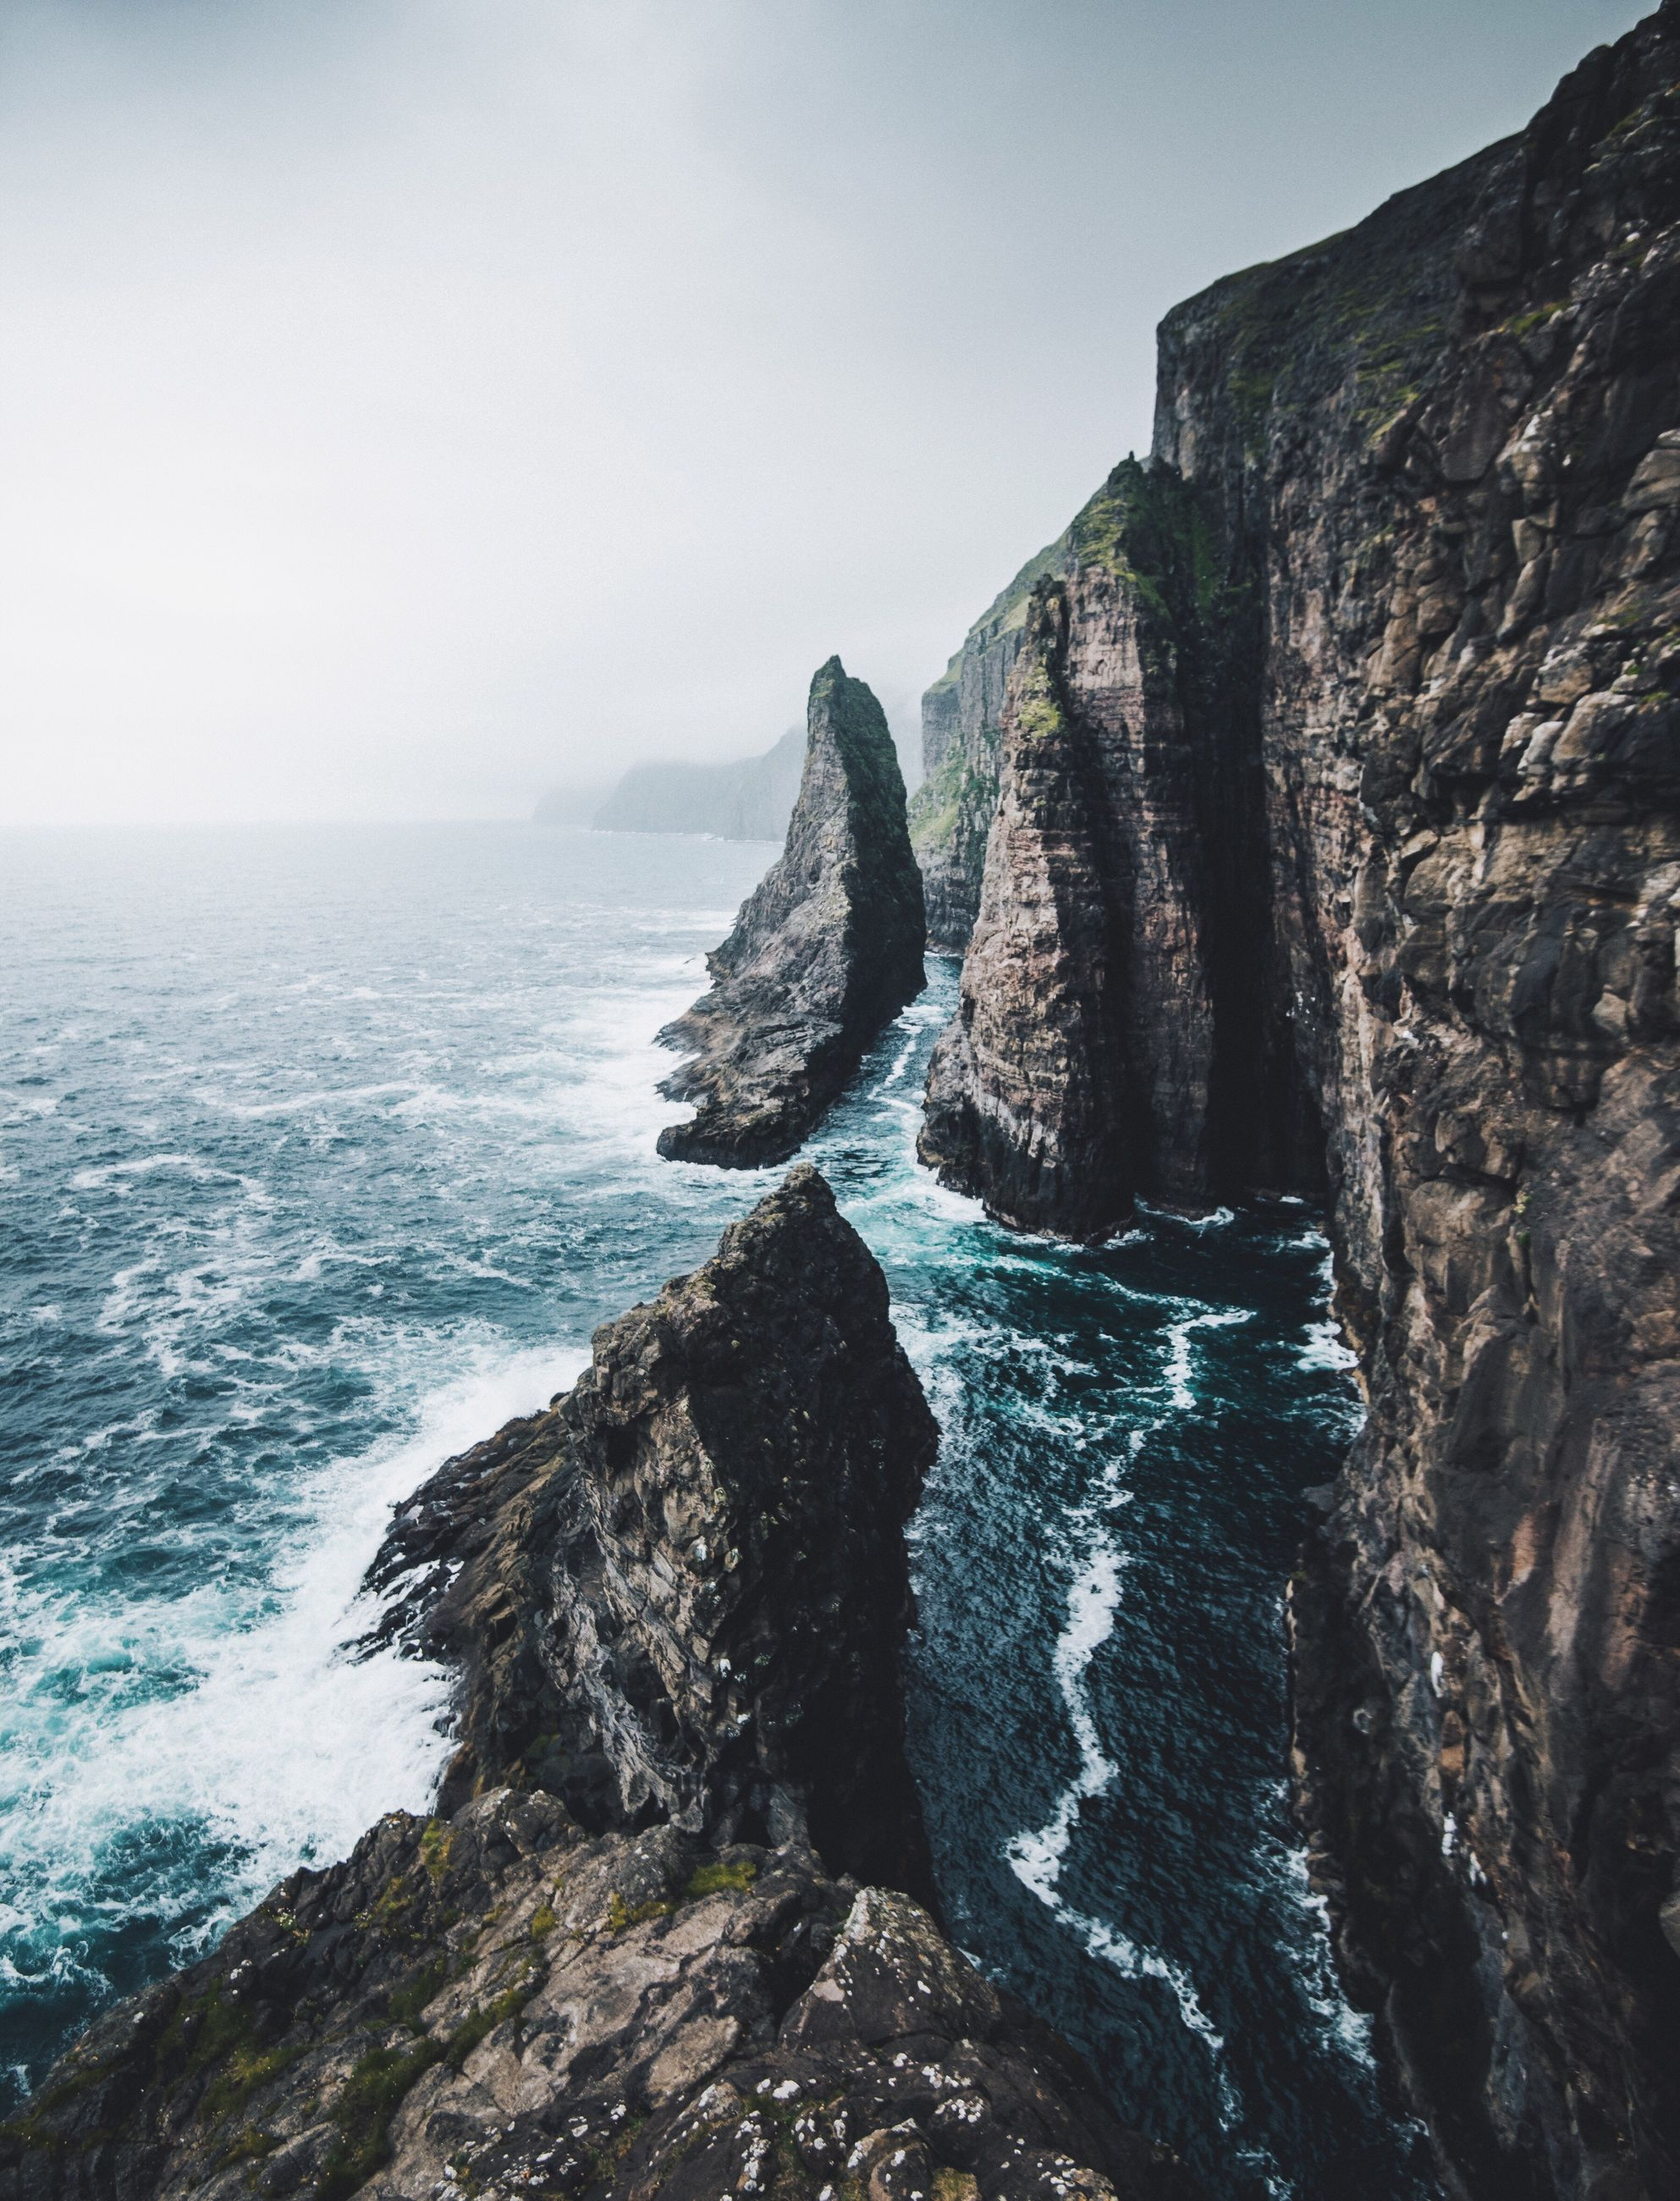 sea, rock - object, rock formation, nature, water, beauty in nature, scenics, cliff, horizon over water, tranquil scene, tranquility, sky, outdoors, day, clear sky, no people, mountain